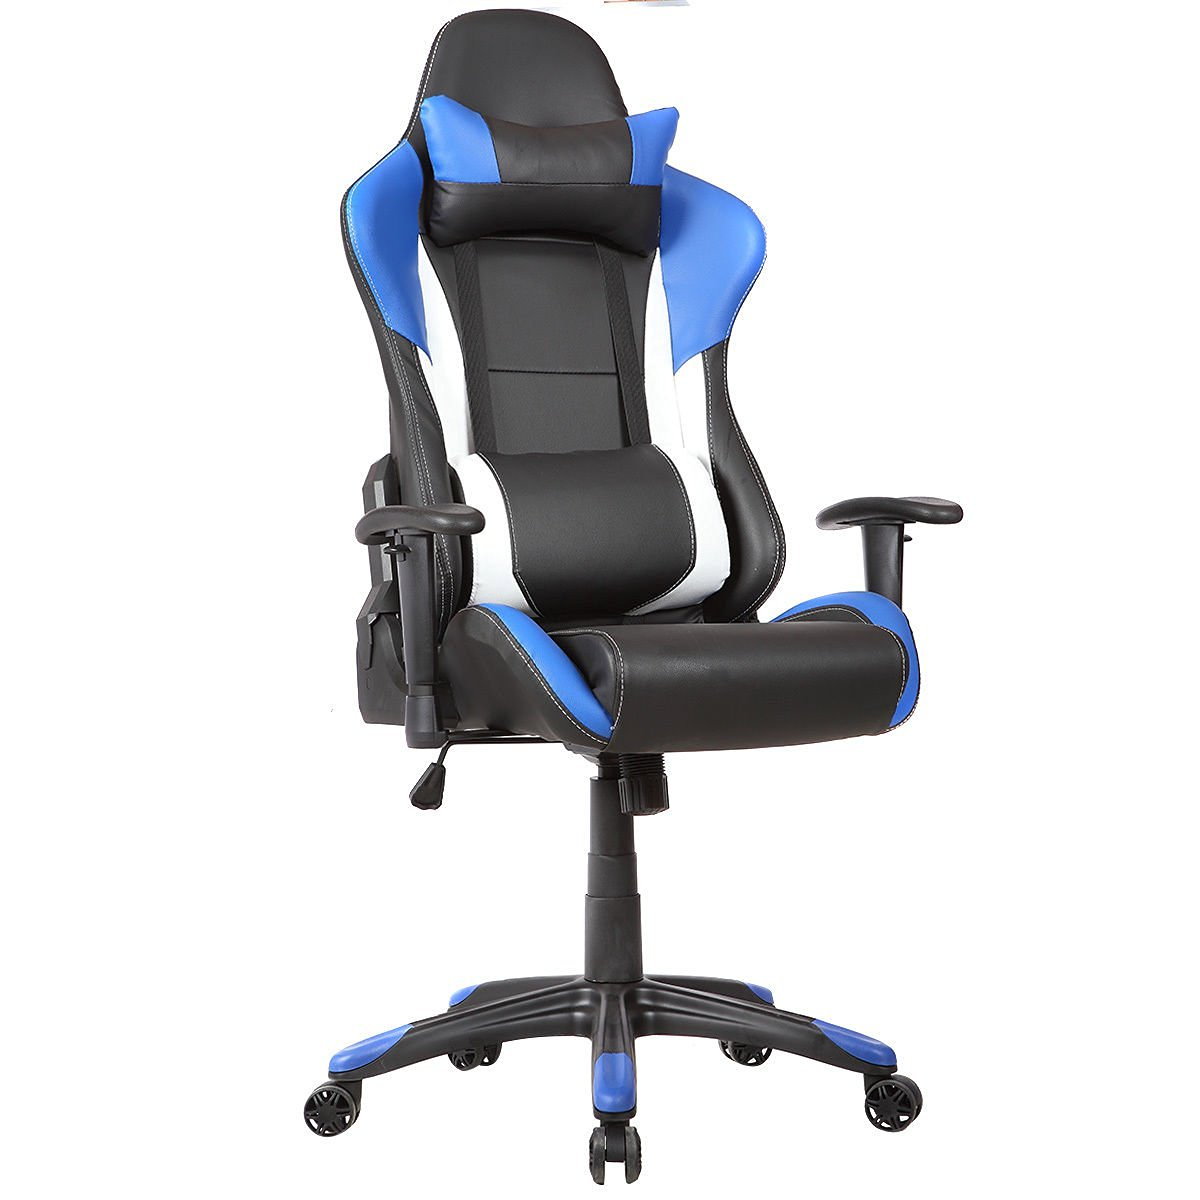 Fine Cheap Gaming Chair Blue Find Gaming Chair Blue Deals On Ocoug Best Dining Table And Chair Ideas Images Ocougorg